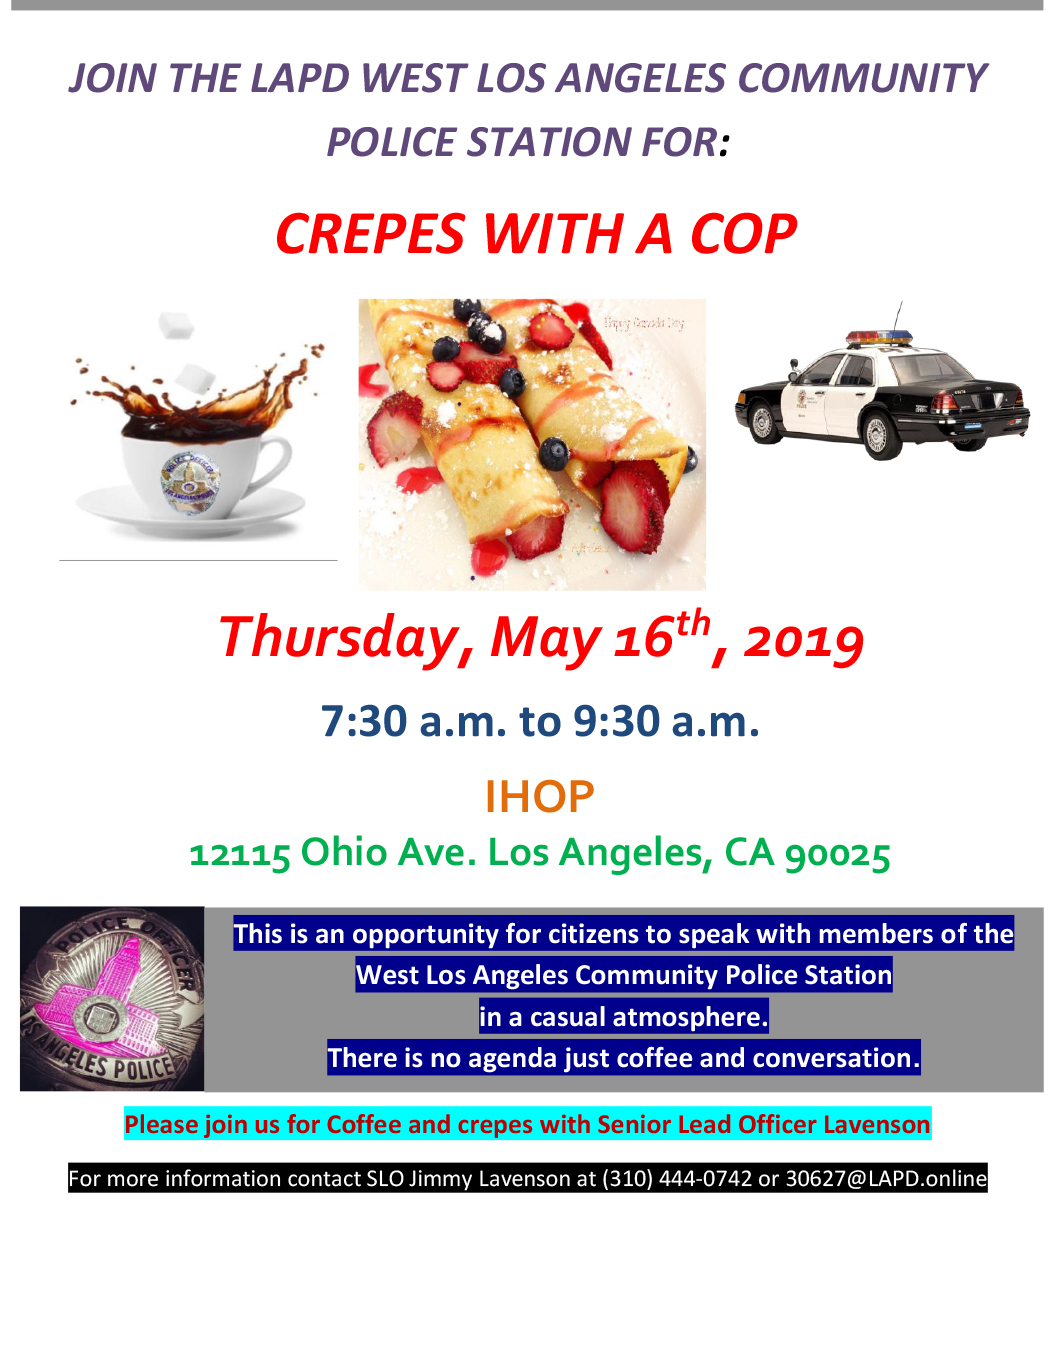 Crepes With A COP.jpg